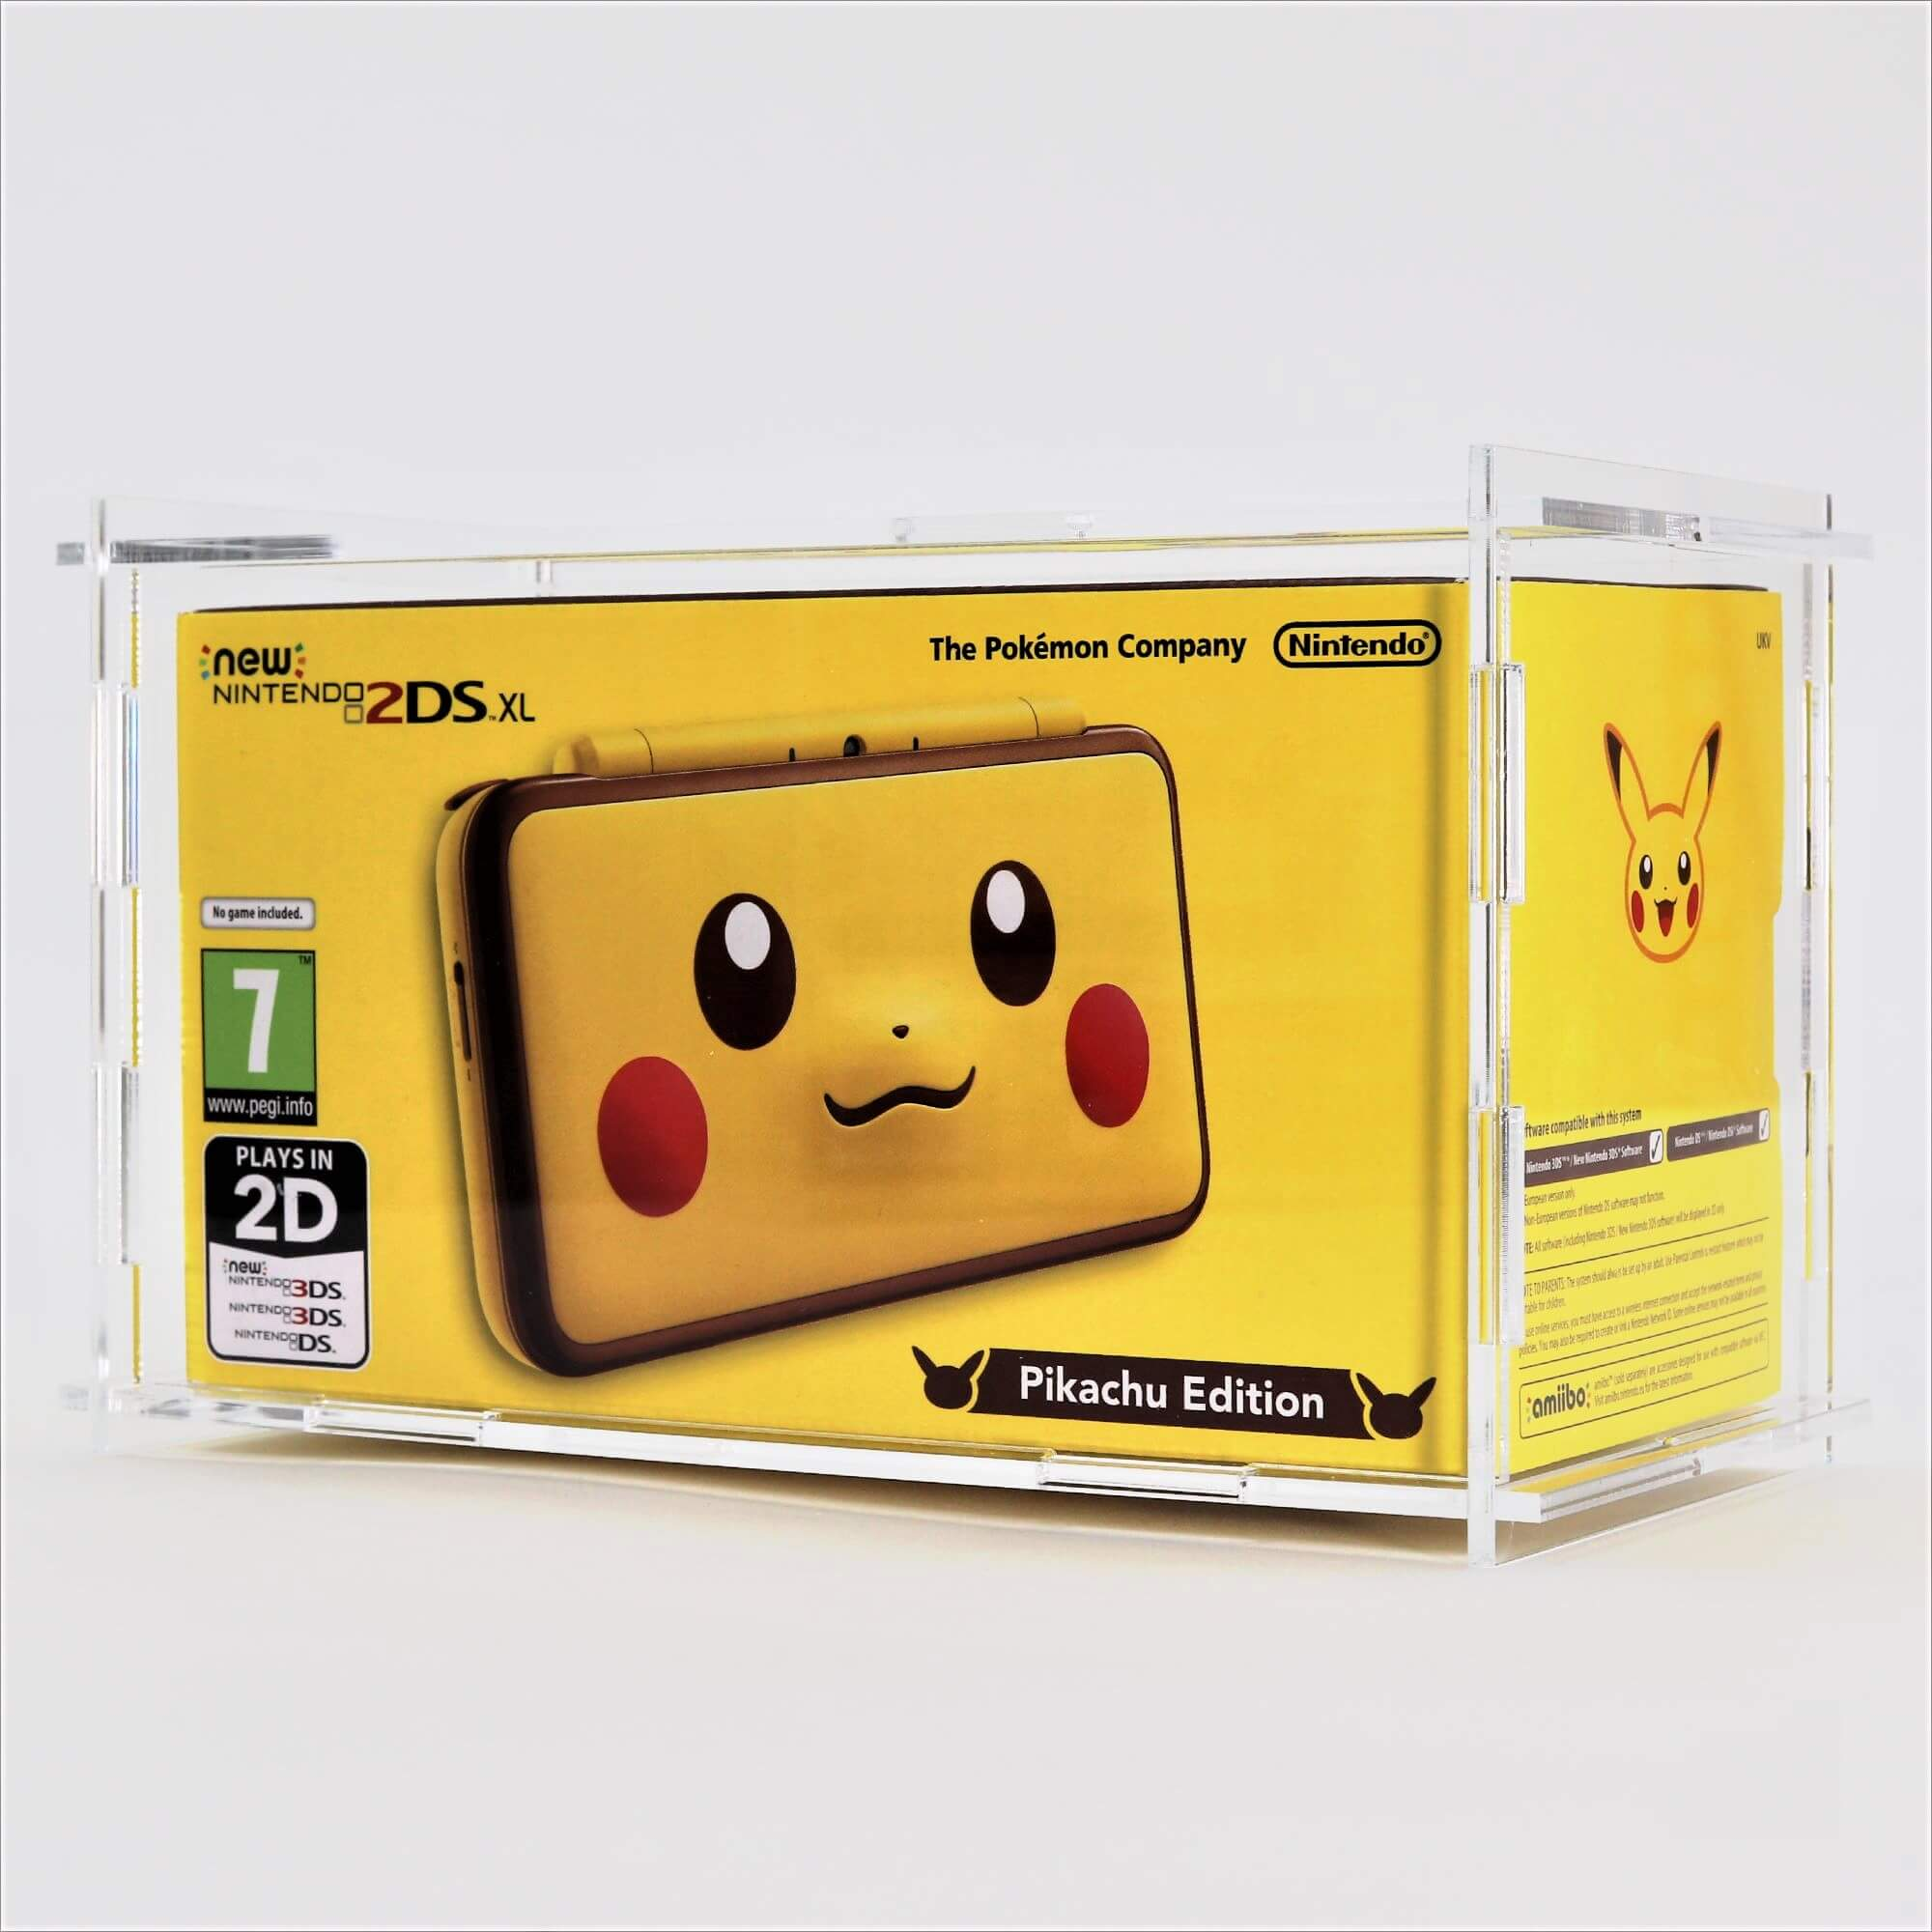 Clear Acrylic NEW Nintendo 2DS XL Boxed Console Display Case